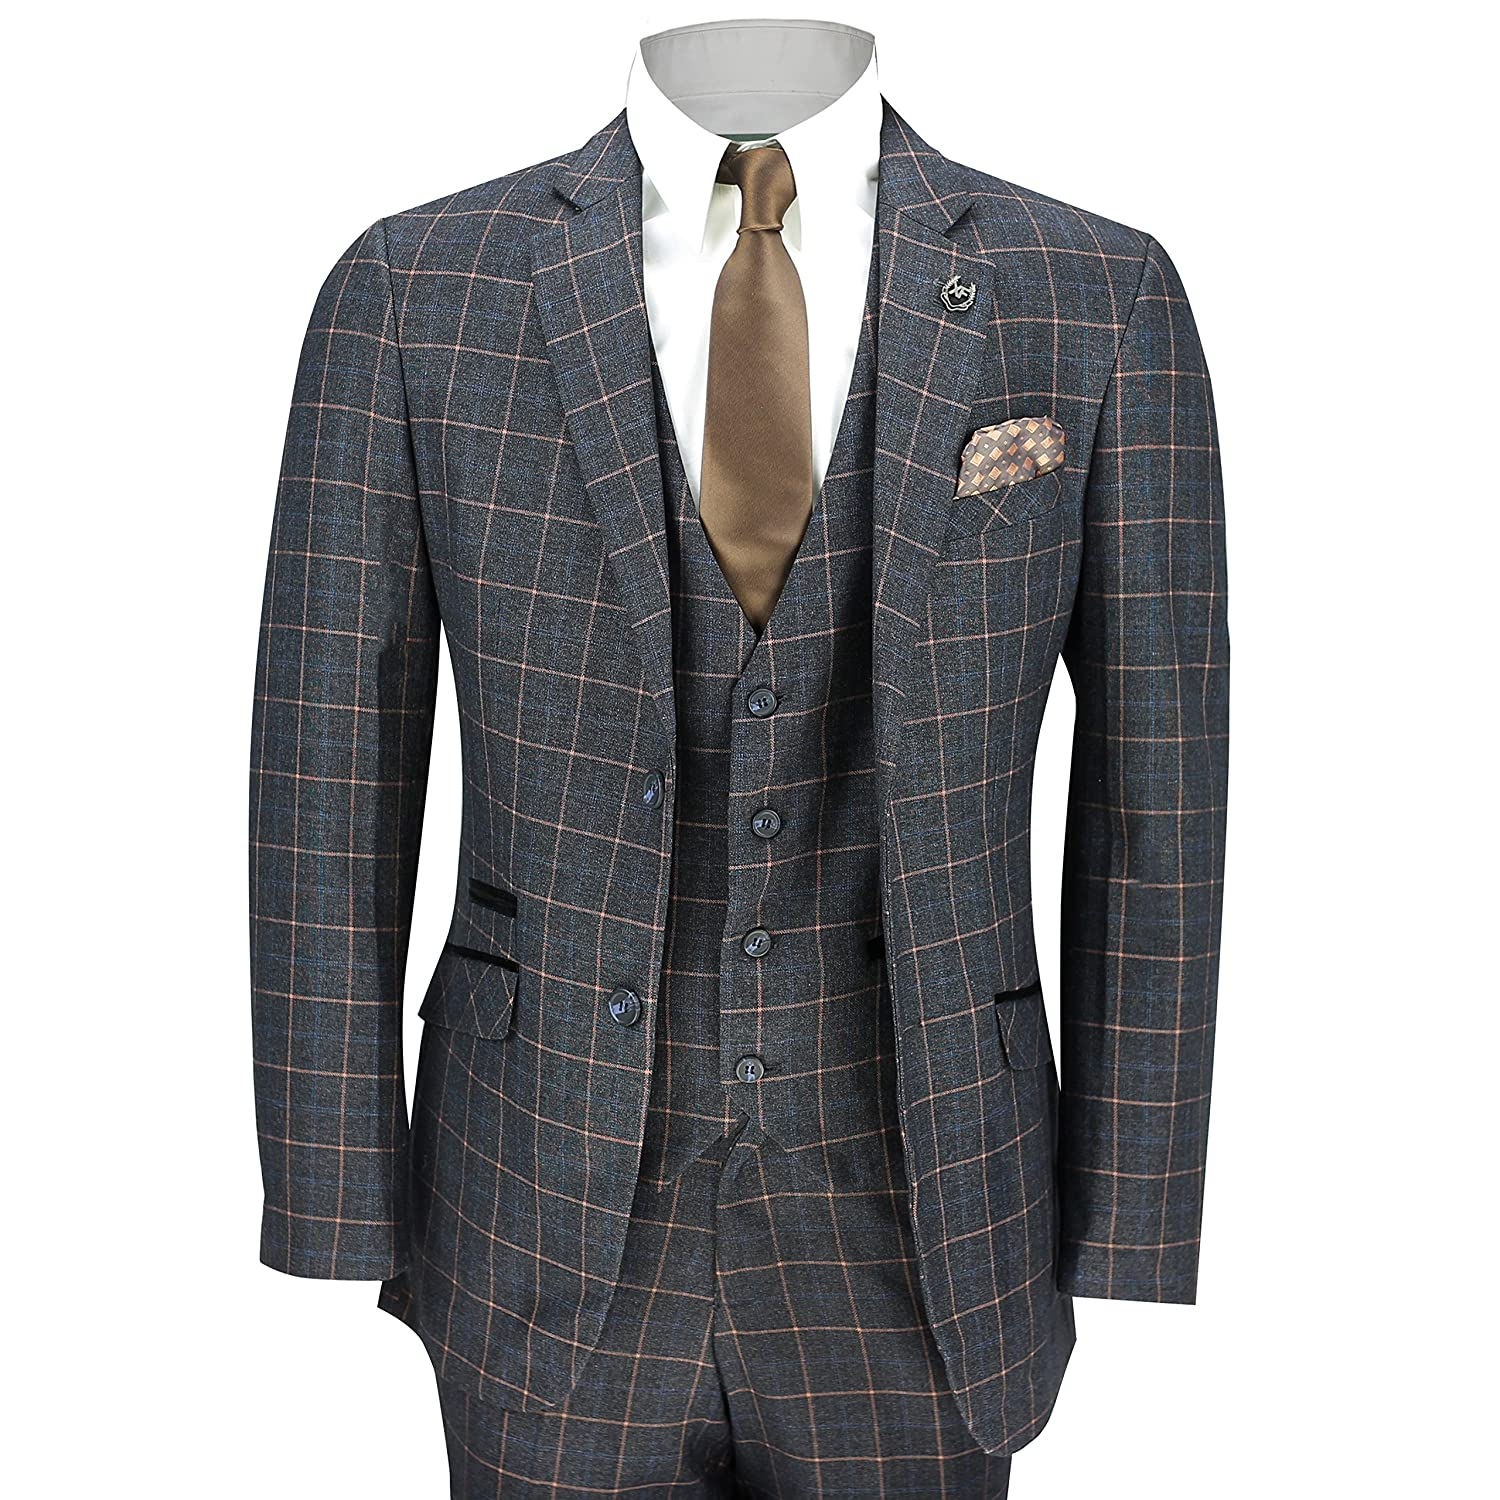 Retro Clothing for Men | Vintage Men's Fashion XPOSED Mens 3 Piece Blue Orange Window Check on Charcoal Grey Retro Smart Tailored Fit Vintage Suit £96.99 AT vintagedancer.com